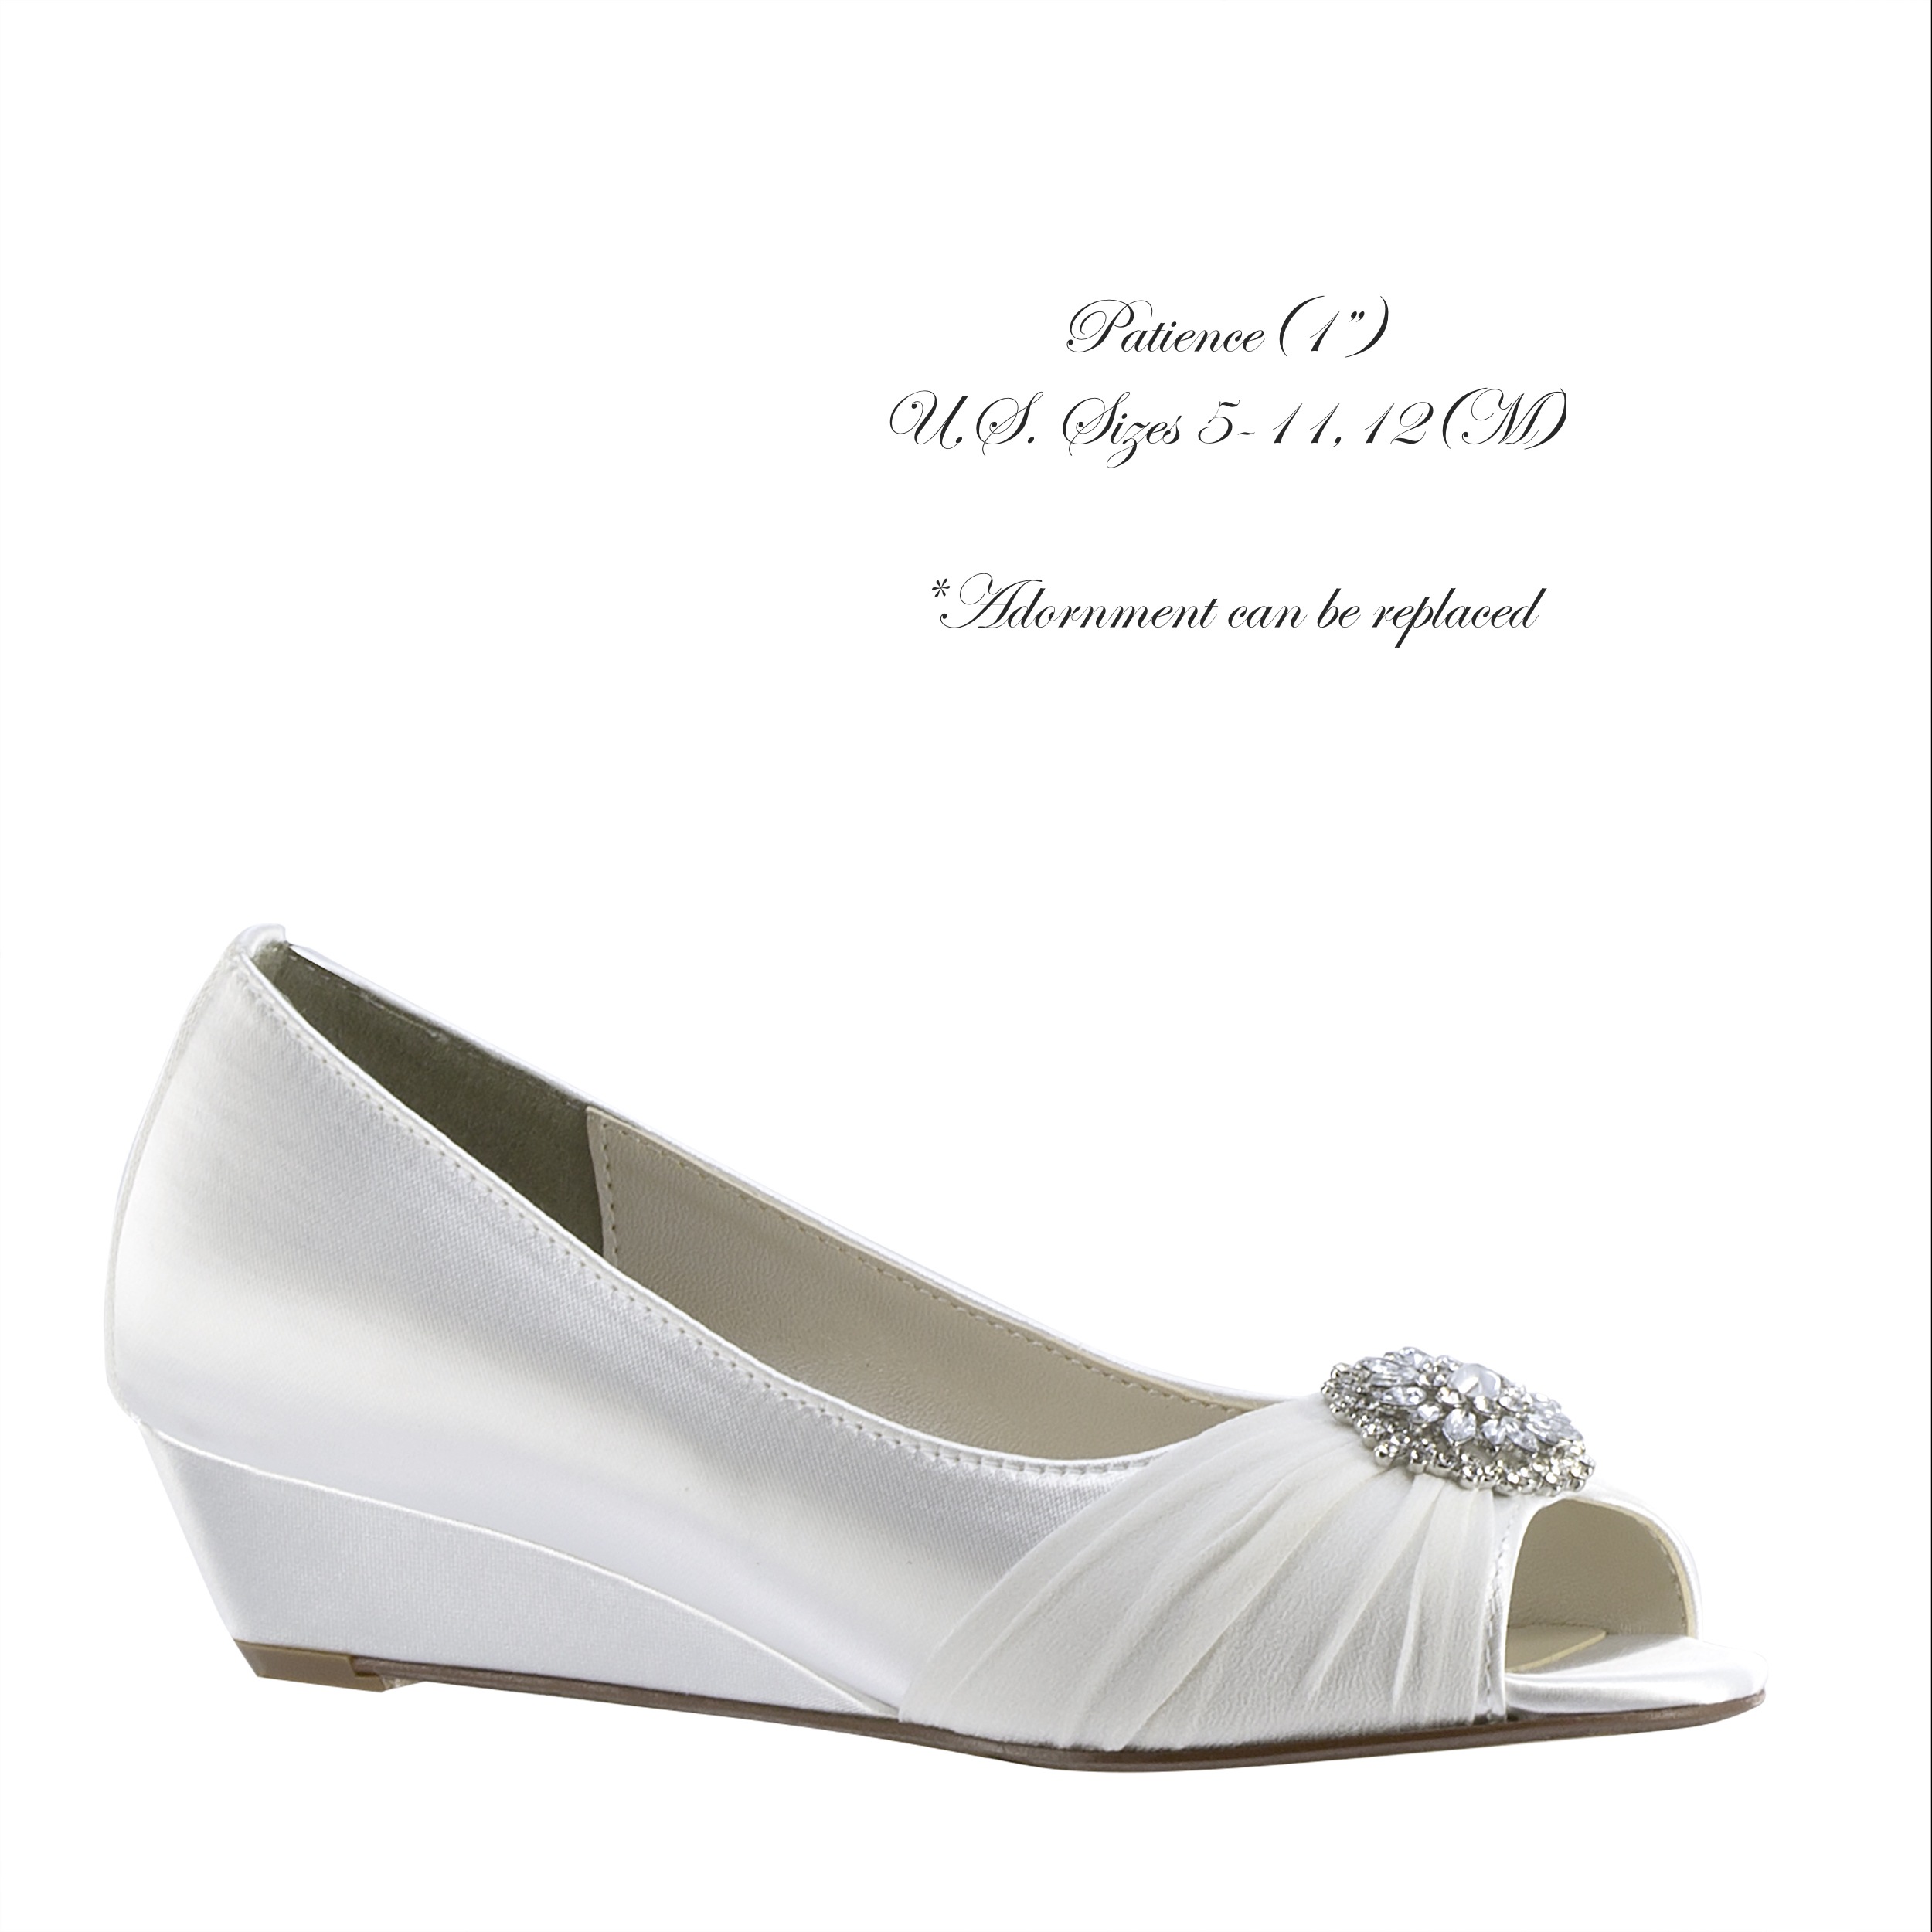 4169 Patience White Satin-1